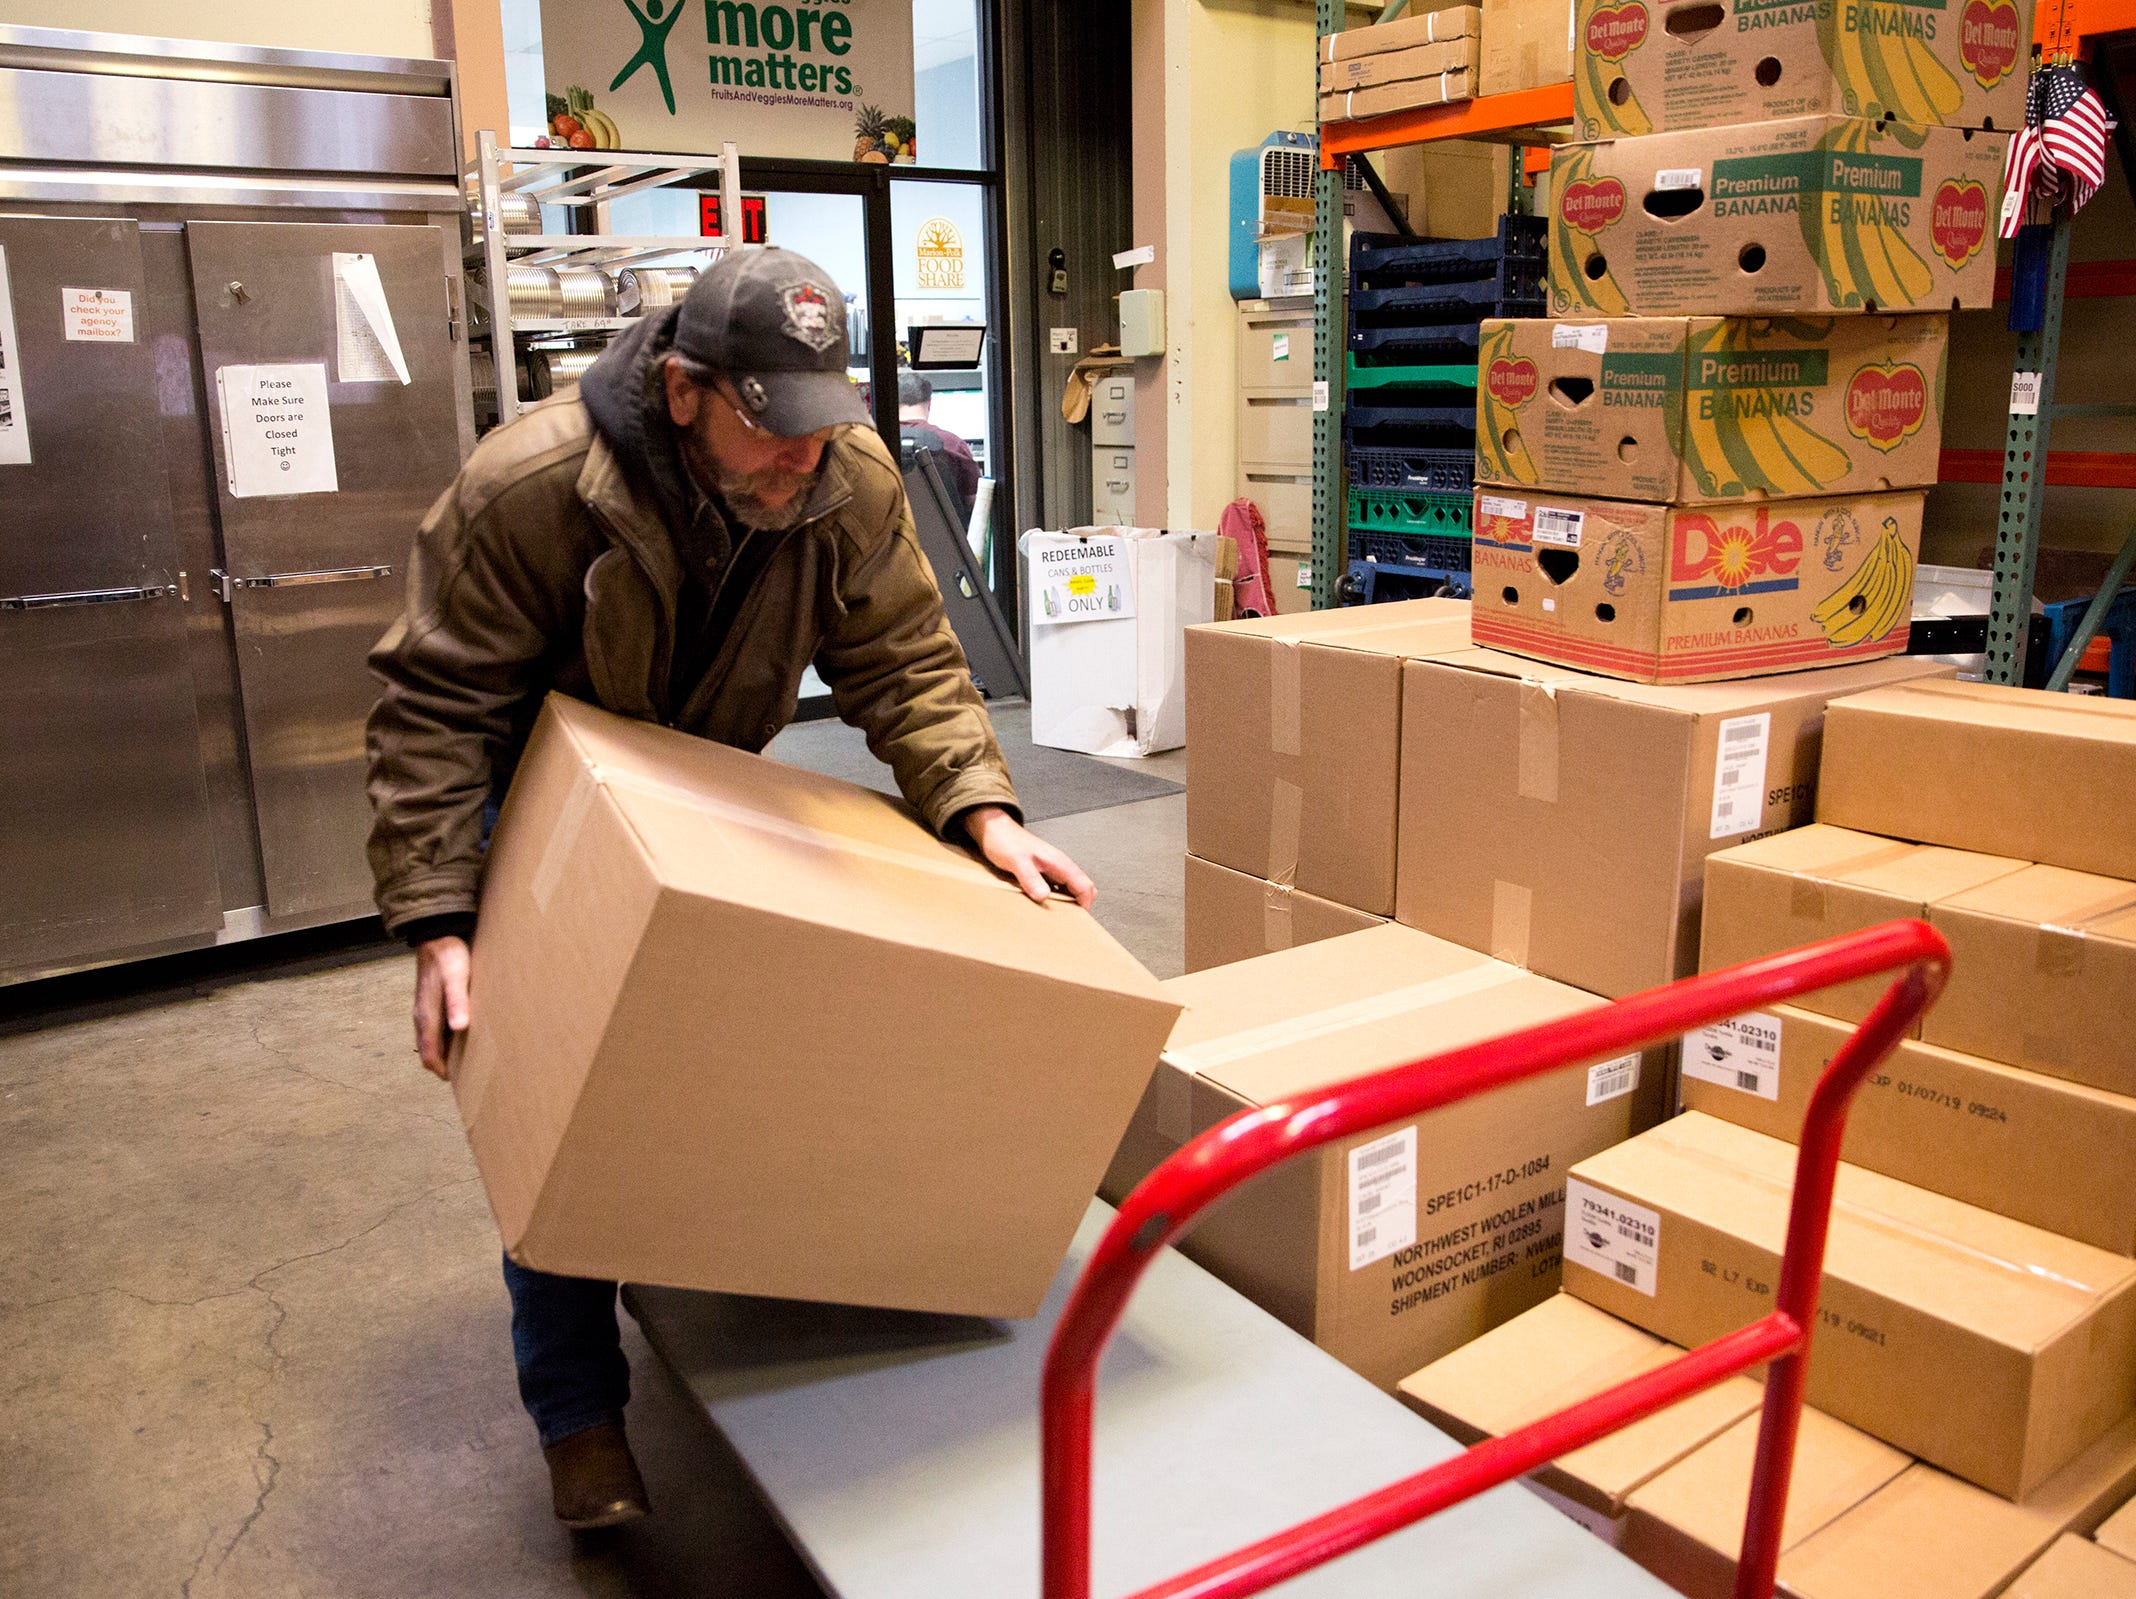 Art Scaglione loads boxes onto a crate at the Marion Polk Food Share in Salem on Friday, Dec. 7, 2018. He collects the food for homeless people living in Wallace Marine Park.